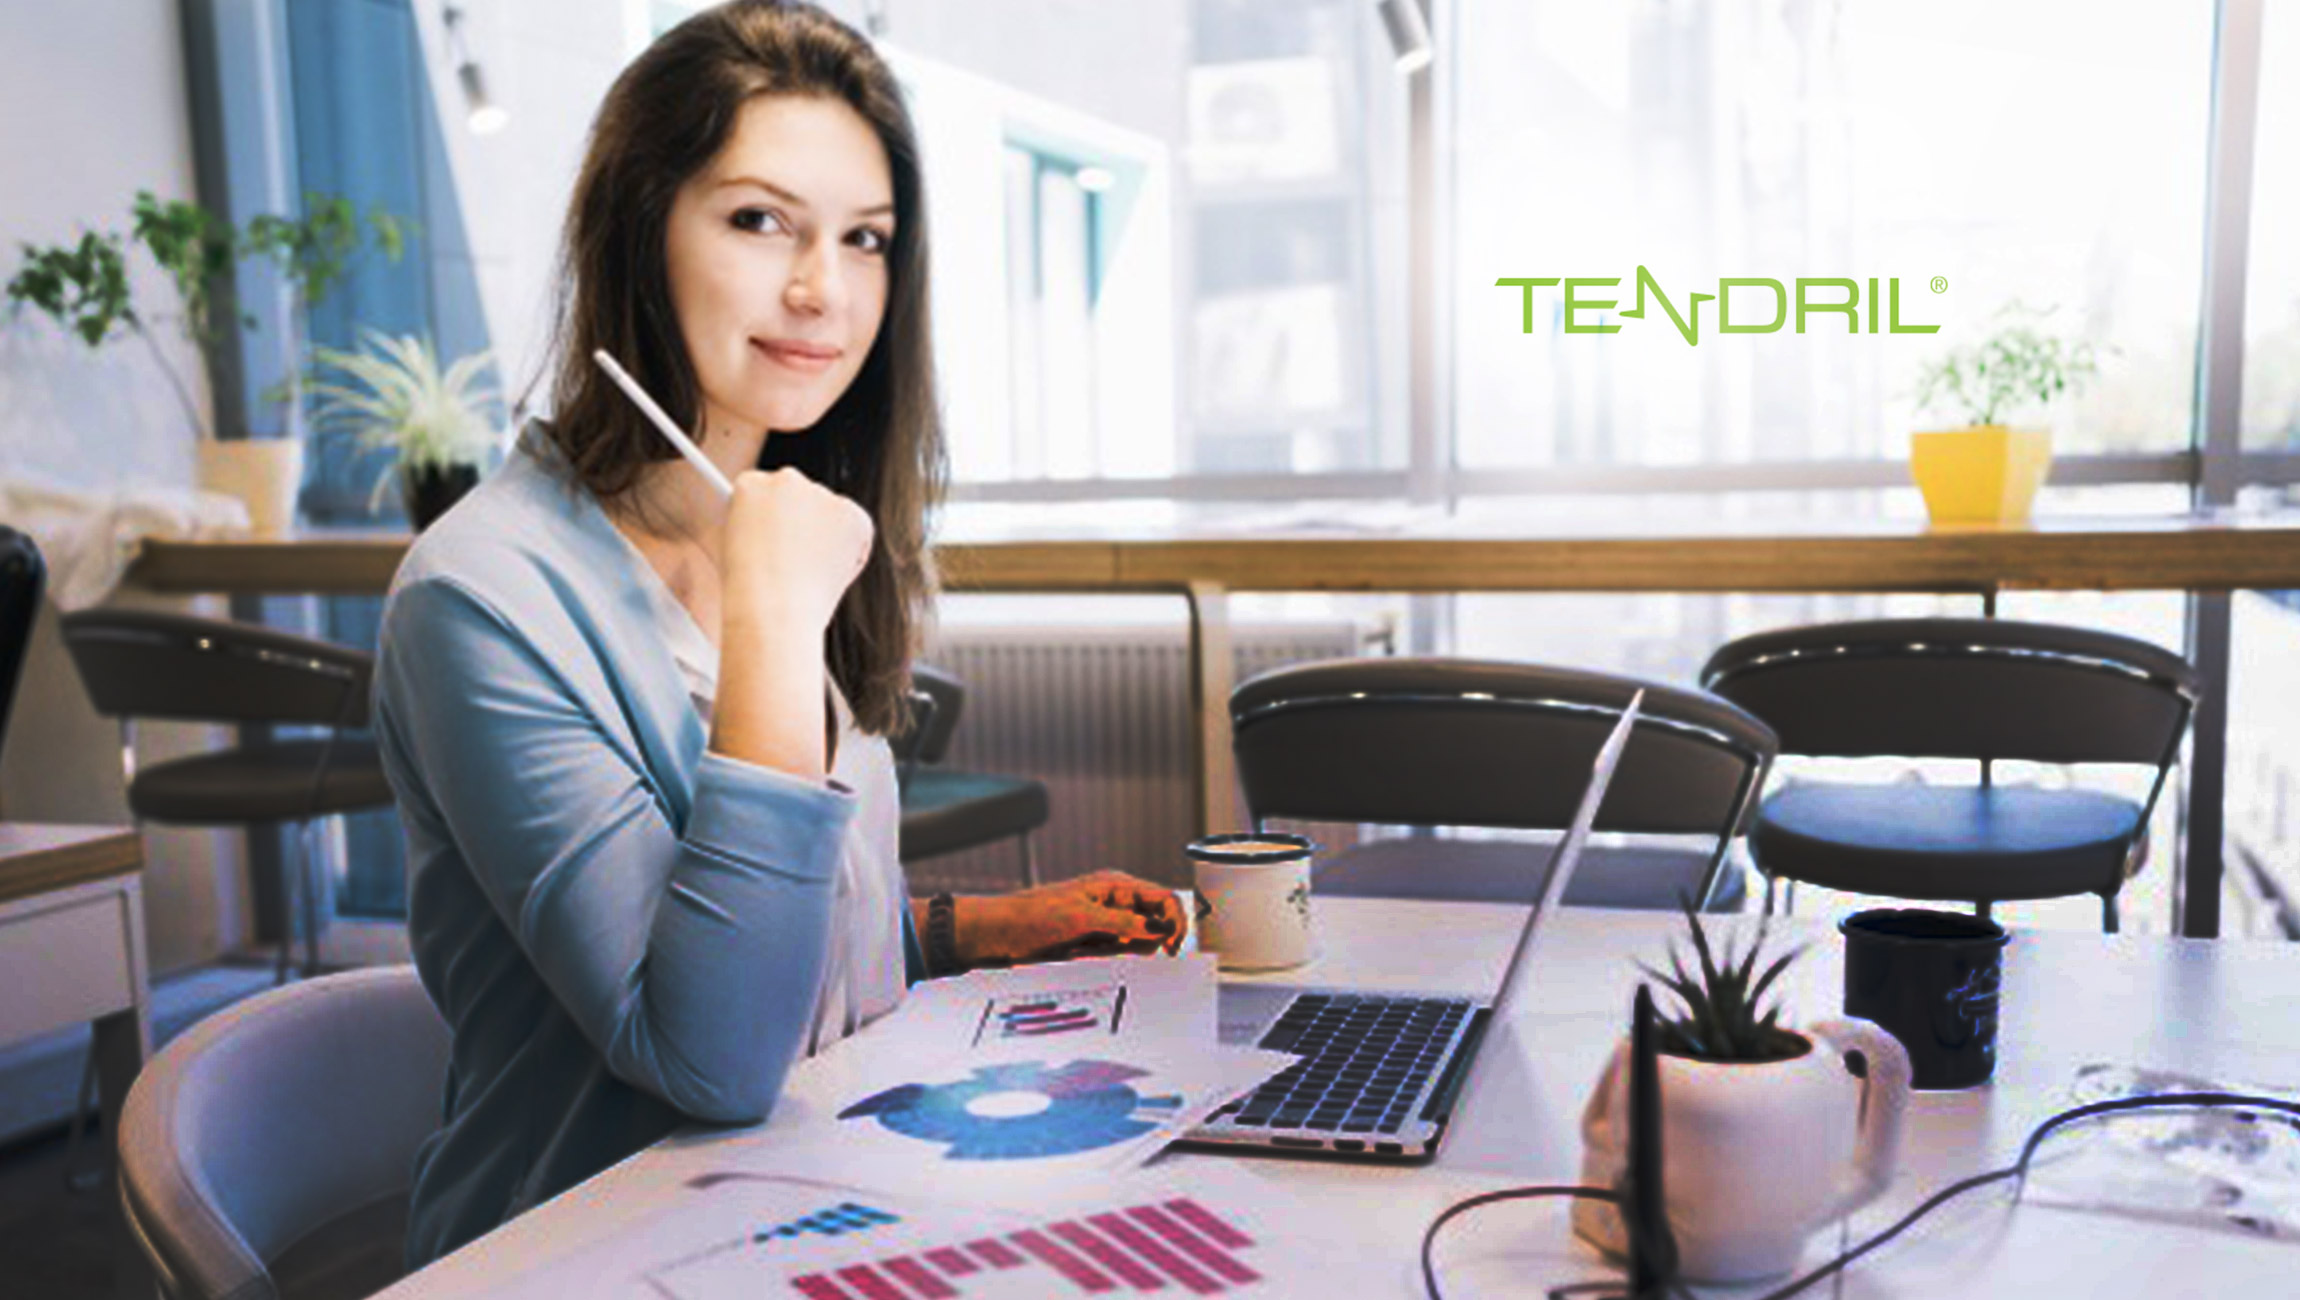 Tendril Receives Strategic Investment from Rubicon Technology Partners